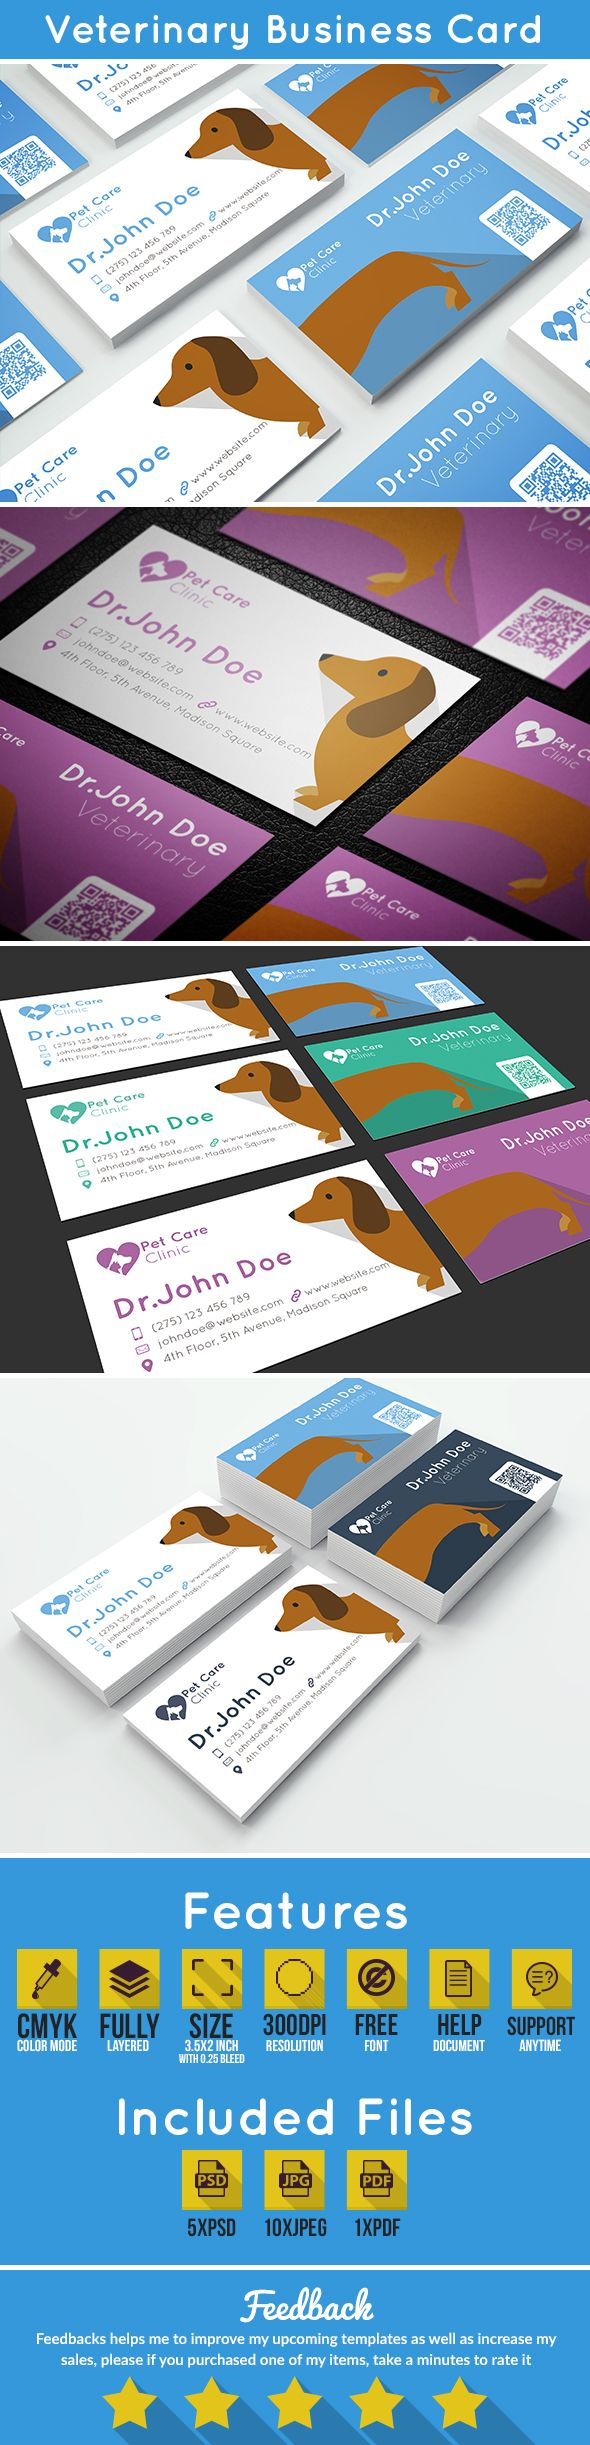 Veterinary Business Card | Pet care, Change colour and Card templates